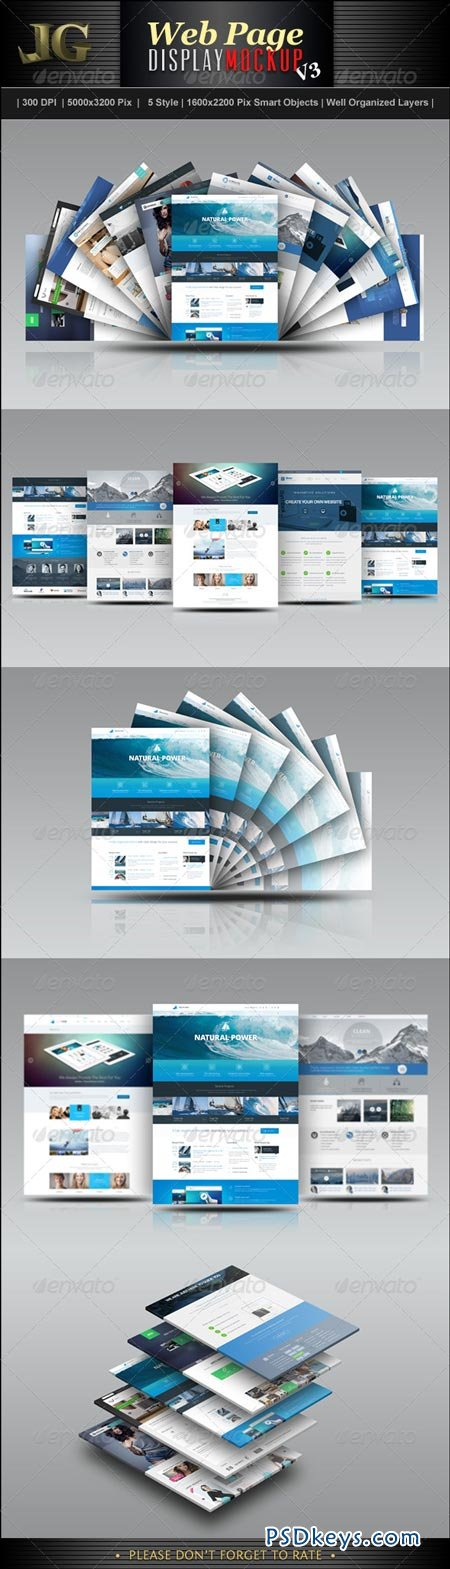 Website Display Mockup V3 6867752